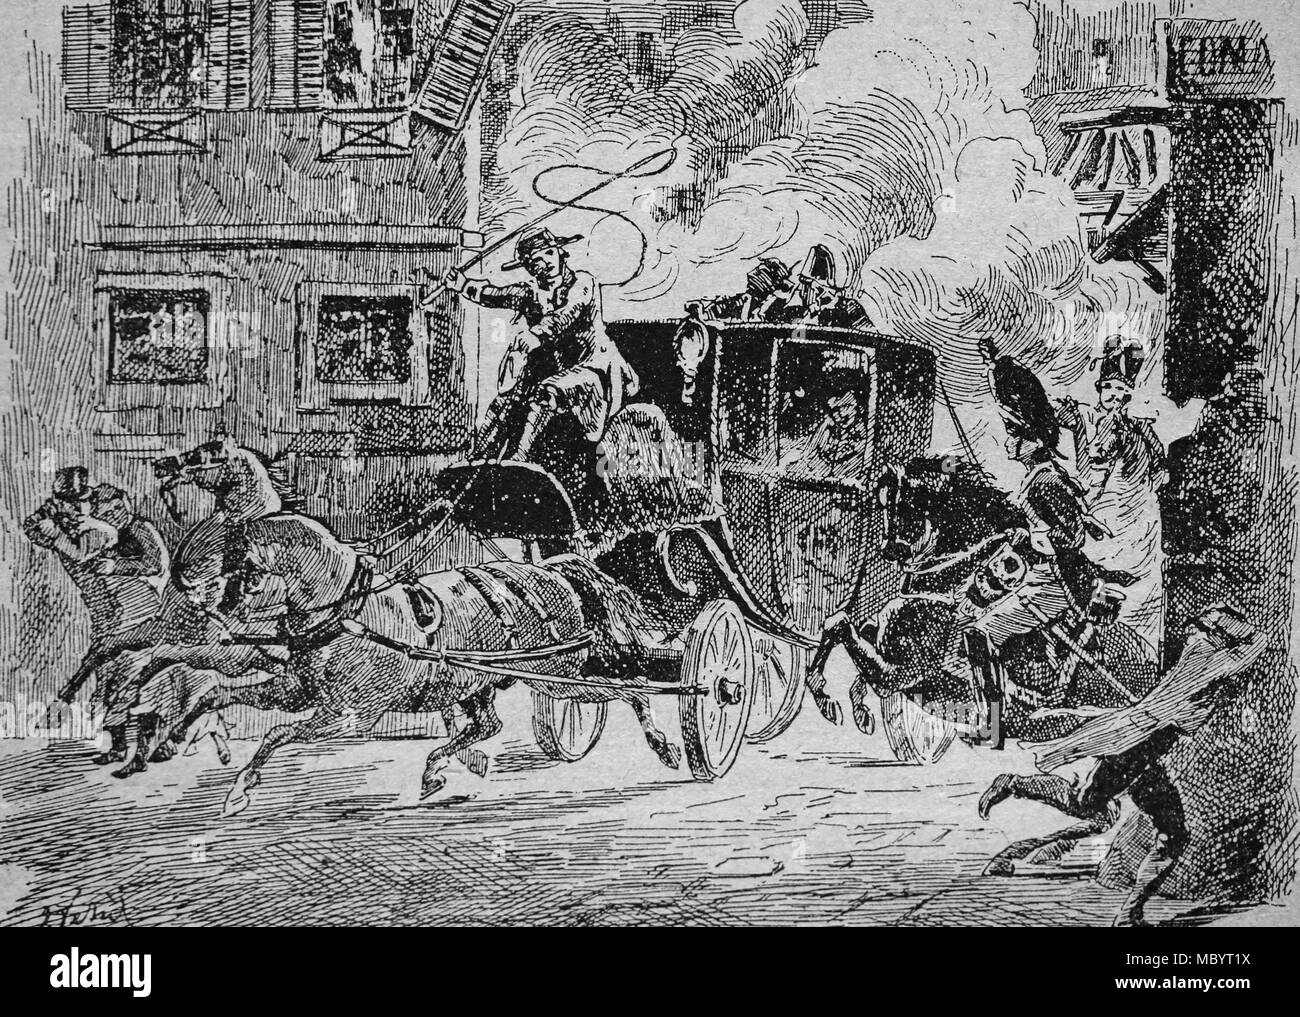 Attempt on the life of 1st Consul Napoleon Bonaparte in St-Nicaise street, or Machine infernale plot, Paris, 24 December 1800. - Stock Image